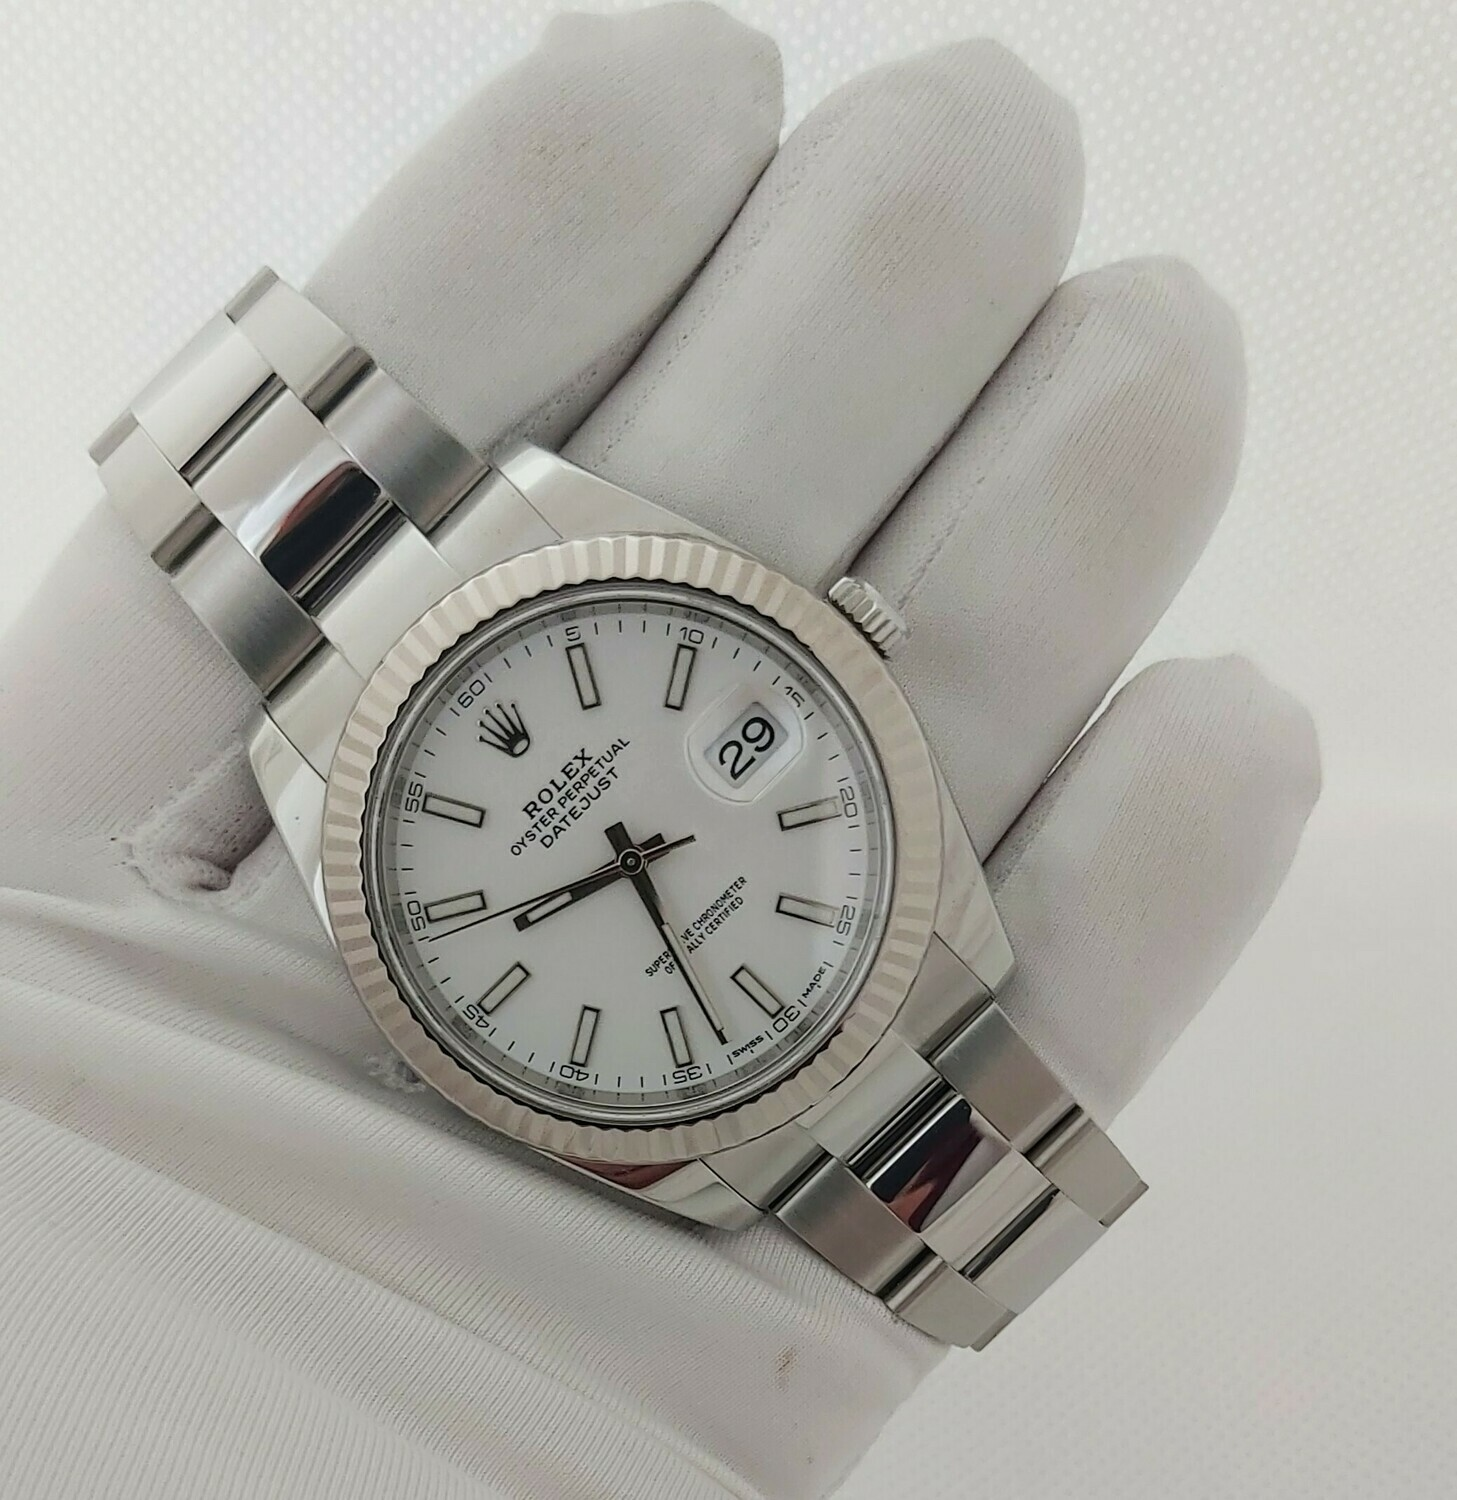 Datejust 126334 41mm - White Dial